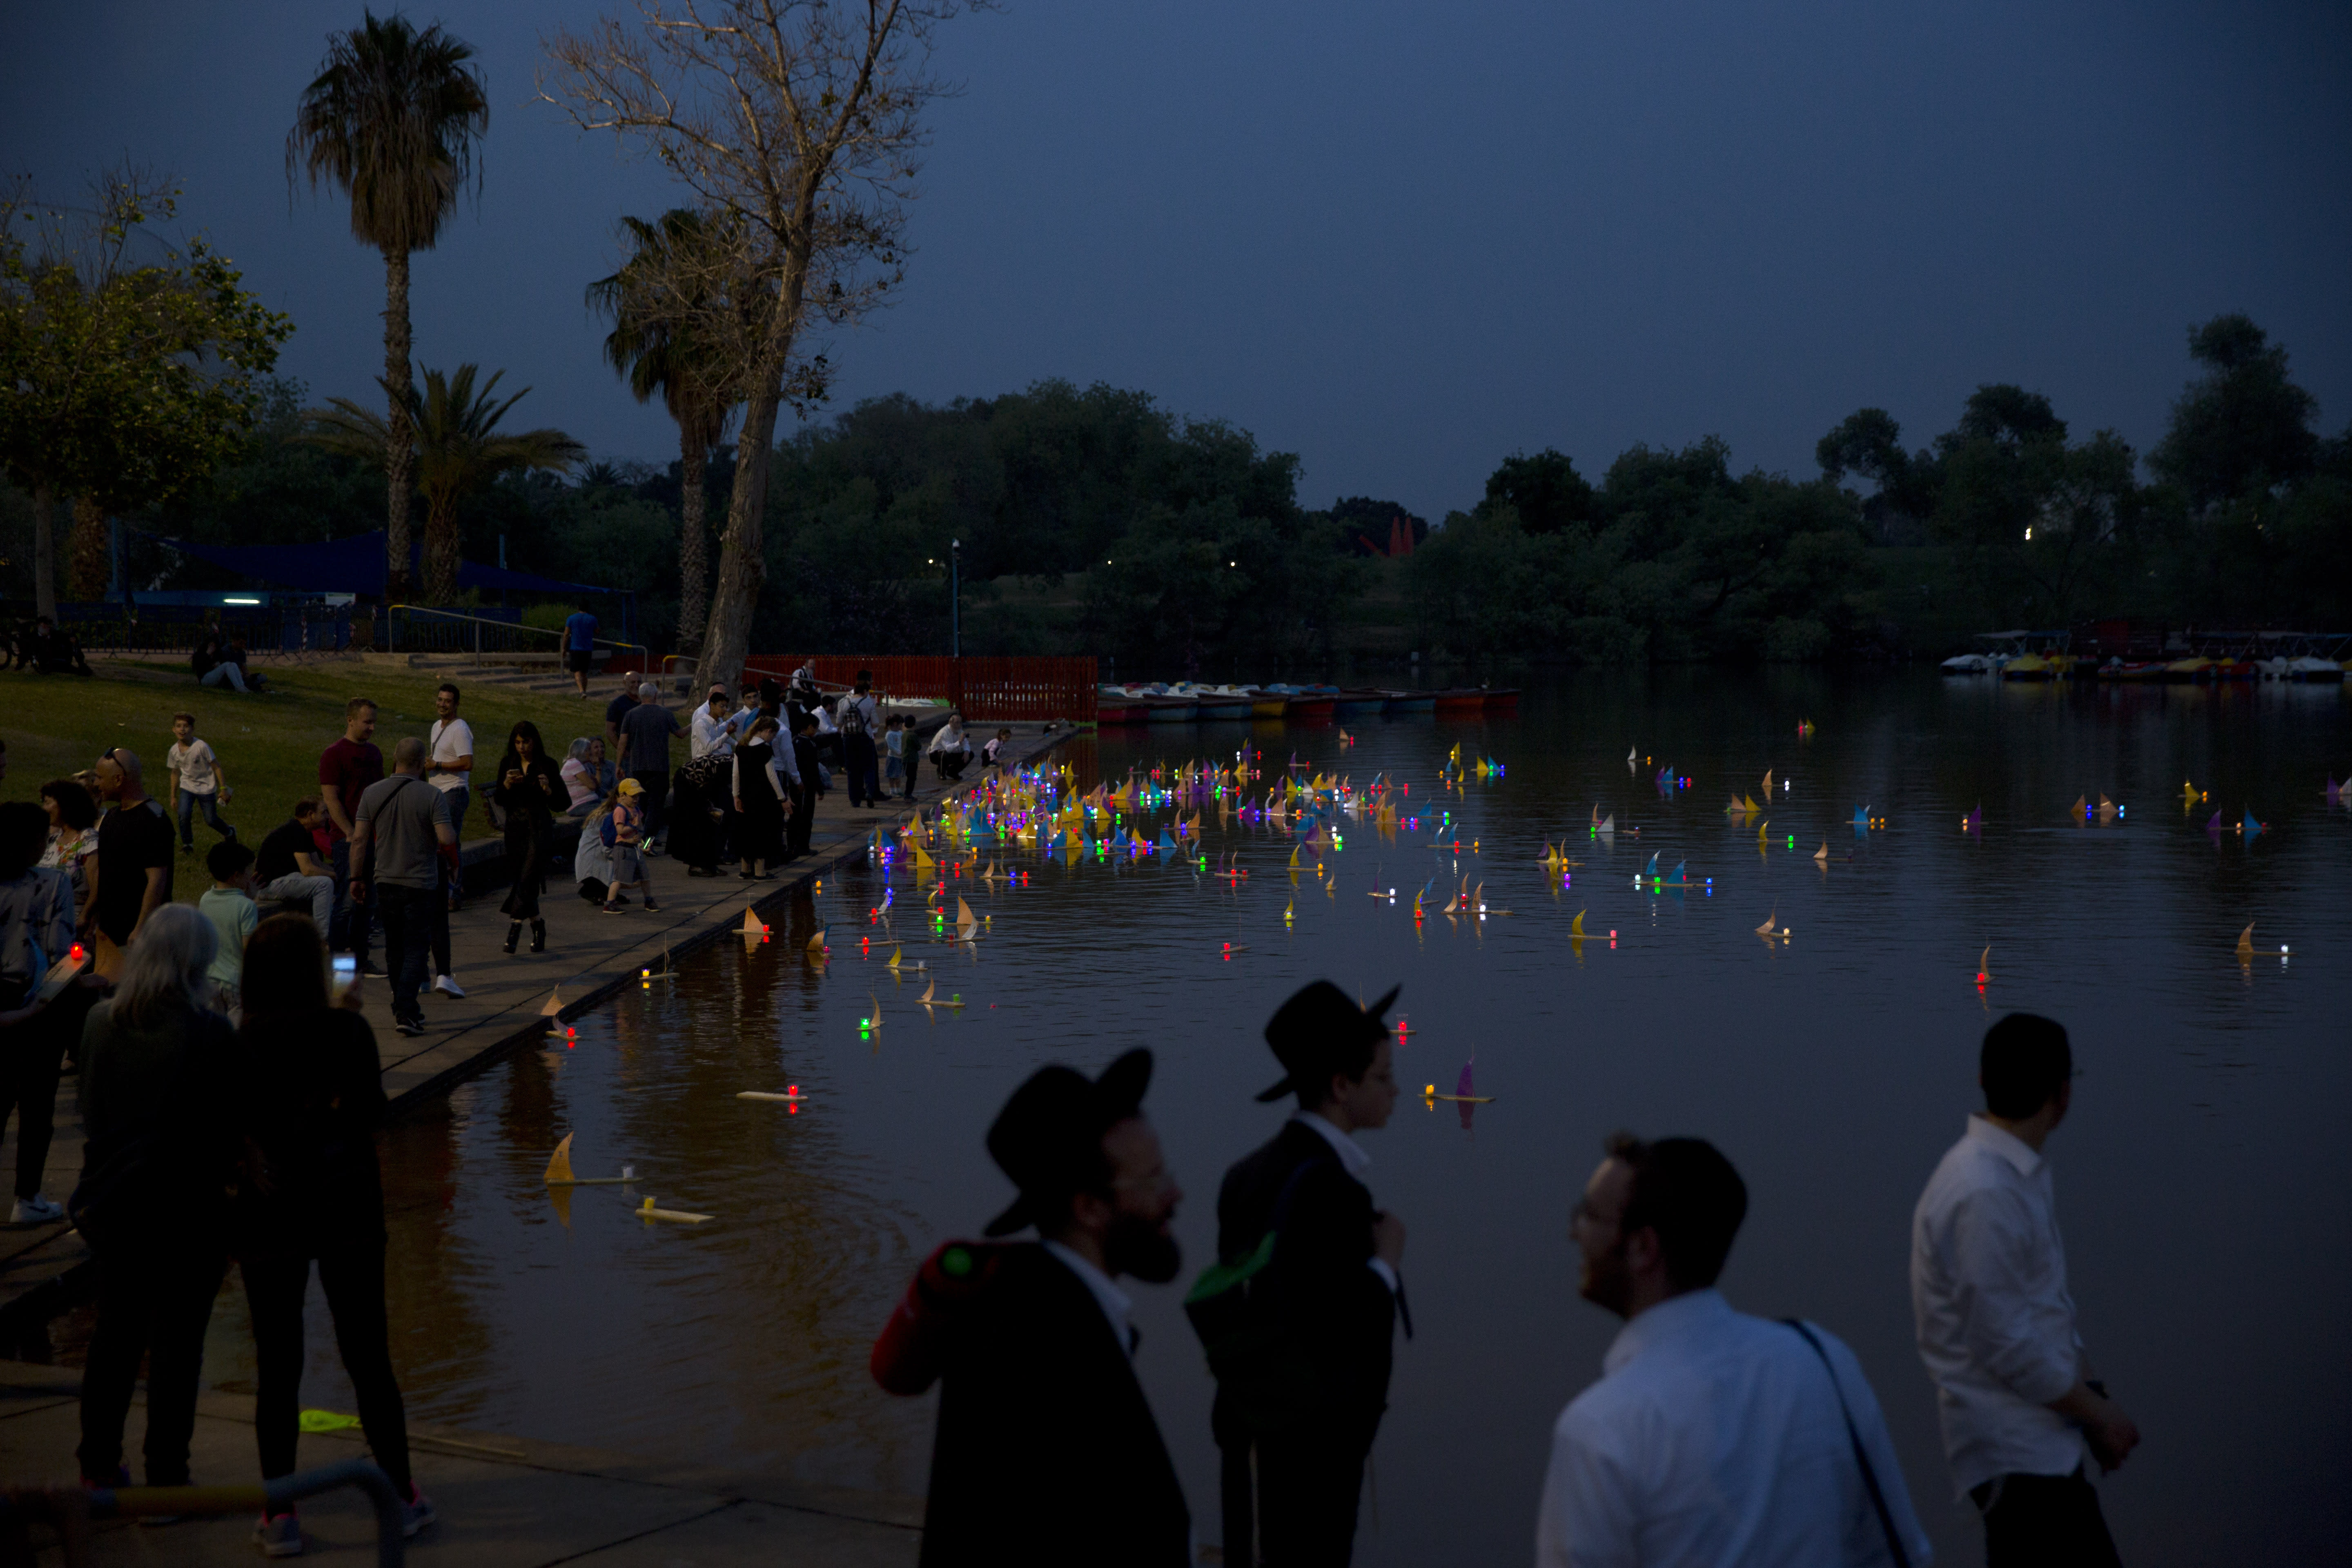 """People look on floating handmade boats with the names of Nazi concentration camps, during a ceremony marking the annual Holocaust Remembrance Day in Hayarkon park in Tel Aviv, Israel, Wednesday, May 1, 2019. Israel marking the annual Day of Remembrance for the six million Jewish victims of the Nazi genocide who perished during World War II. Hebrew reads """"to remember"""". (AP Photo/Oded Balilty)"""